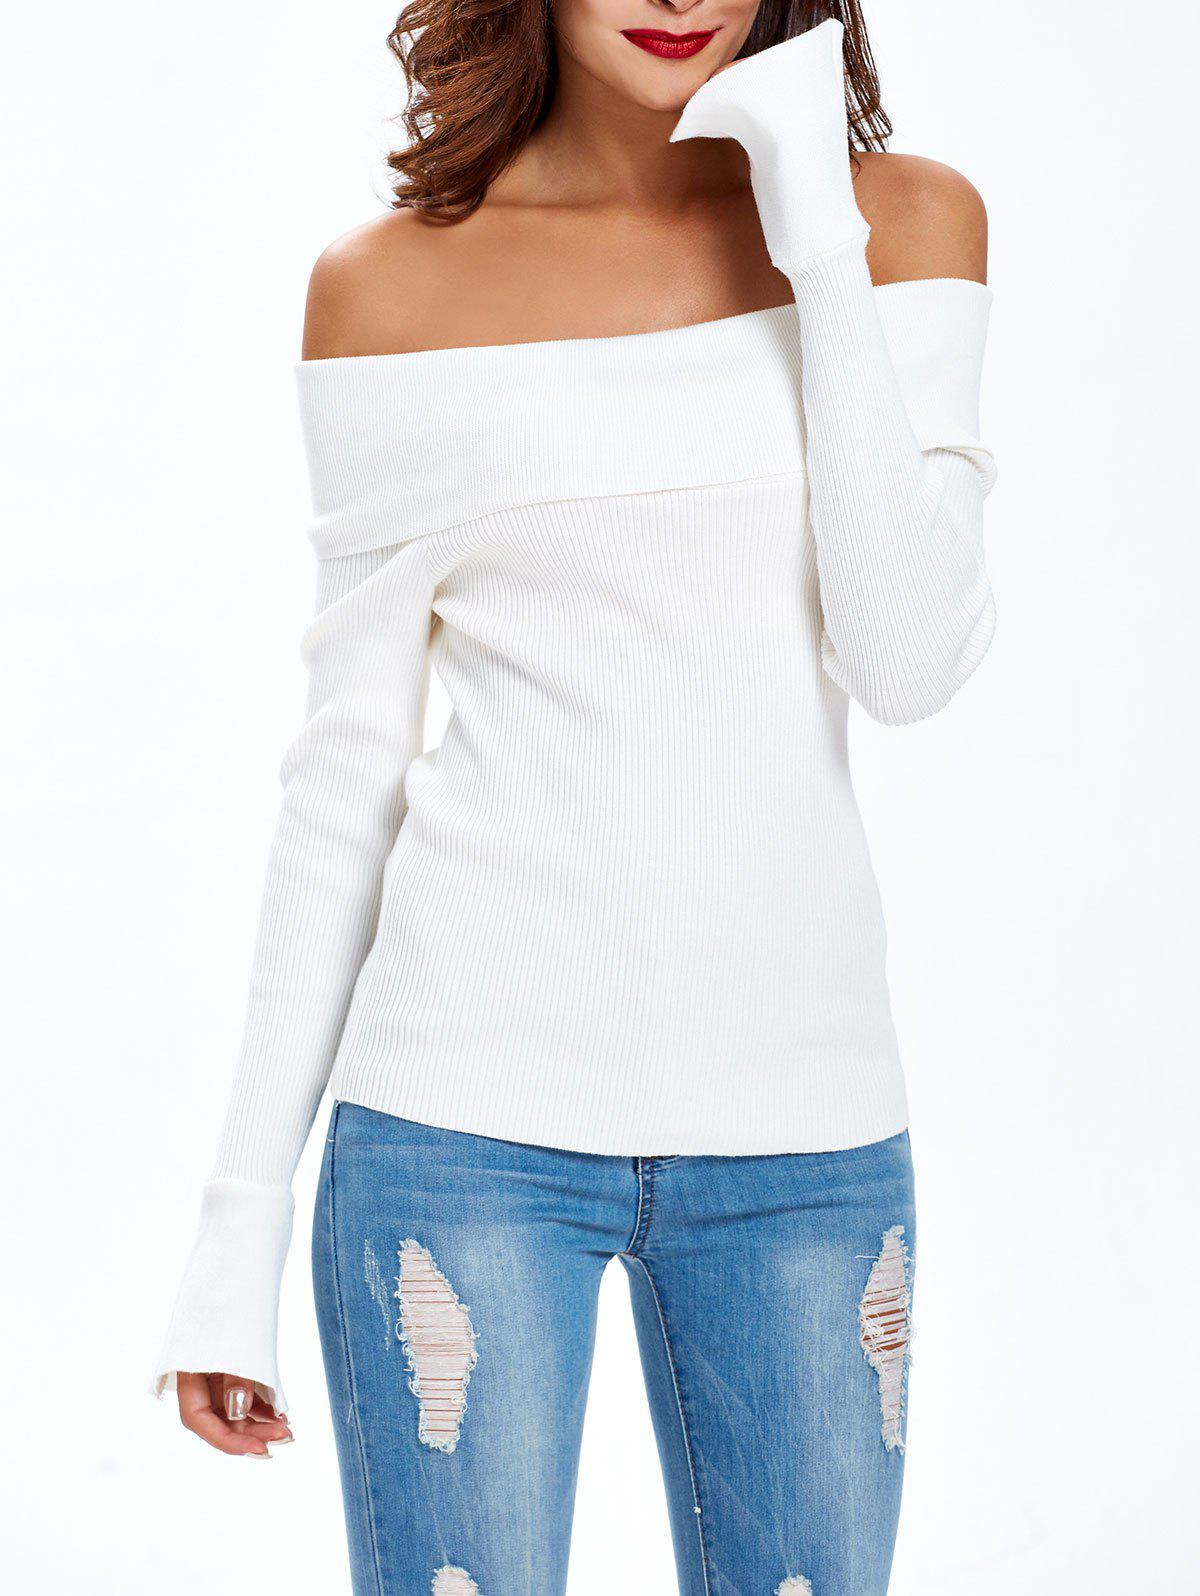 Bell Sleeves Off-The-Shoulder Slimming Knitwear